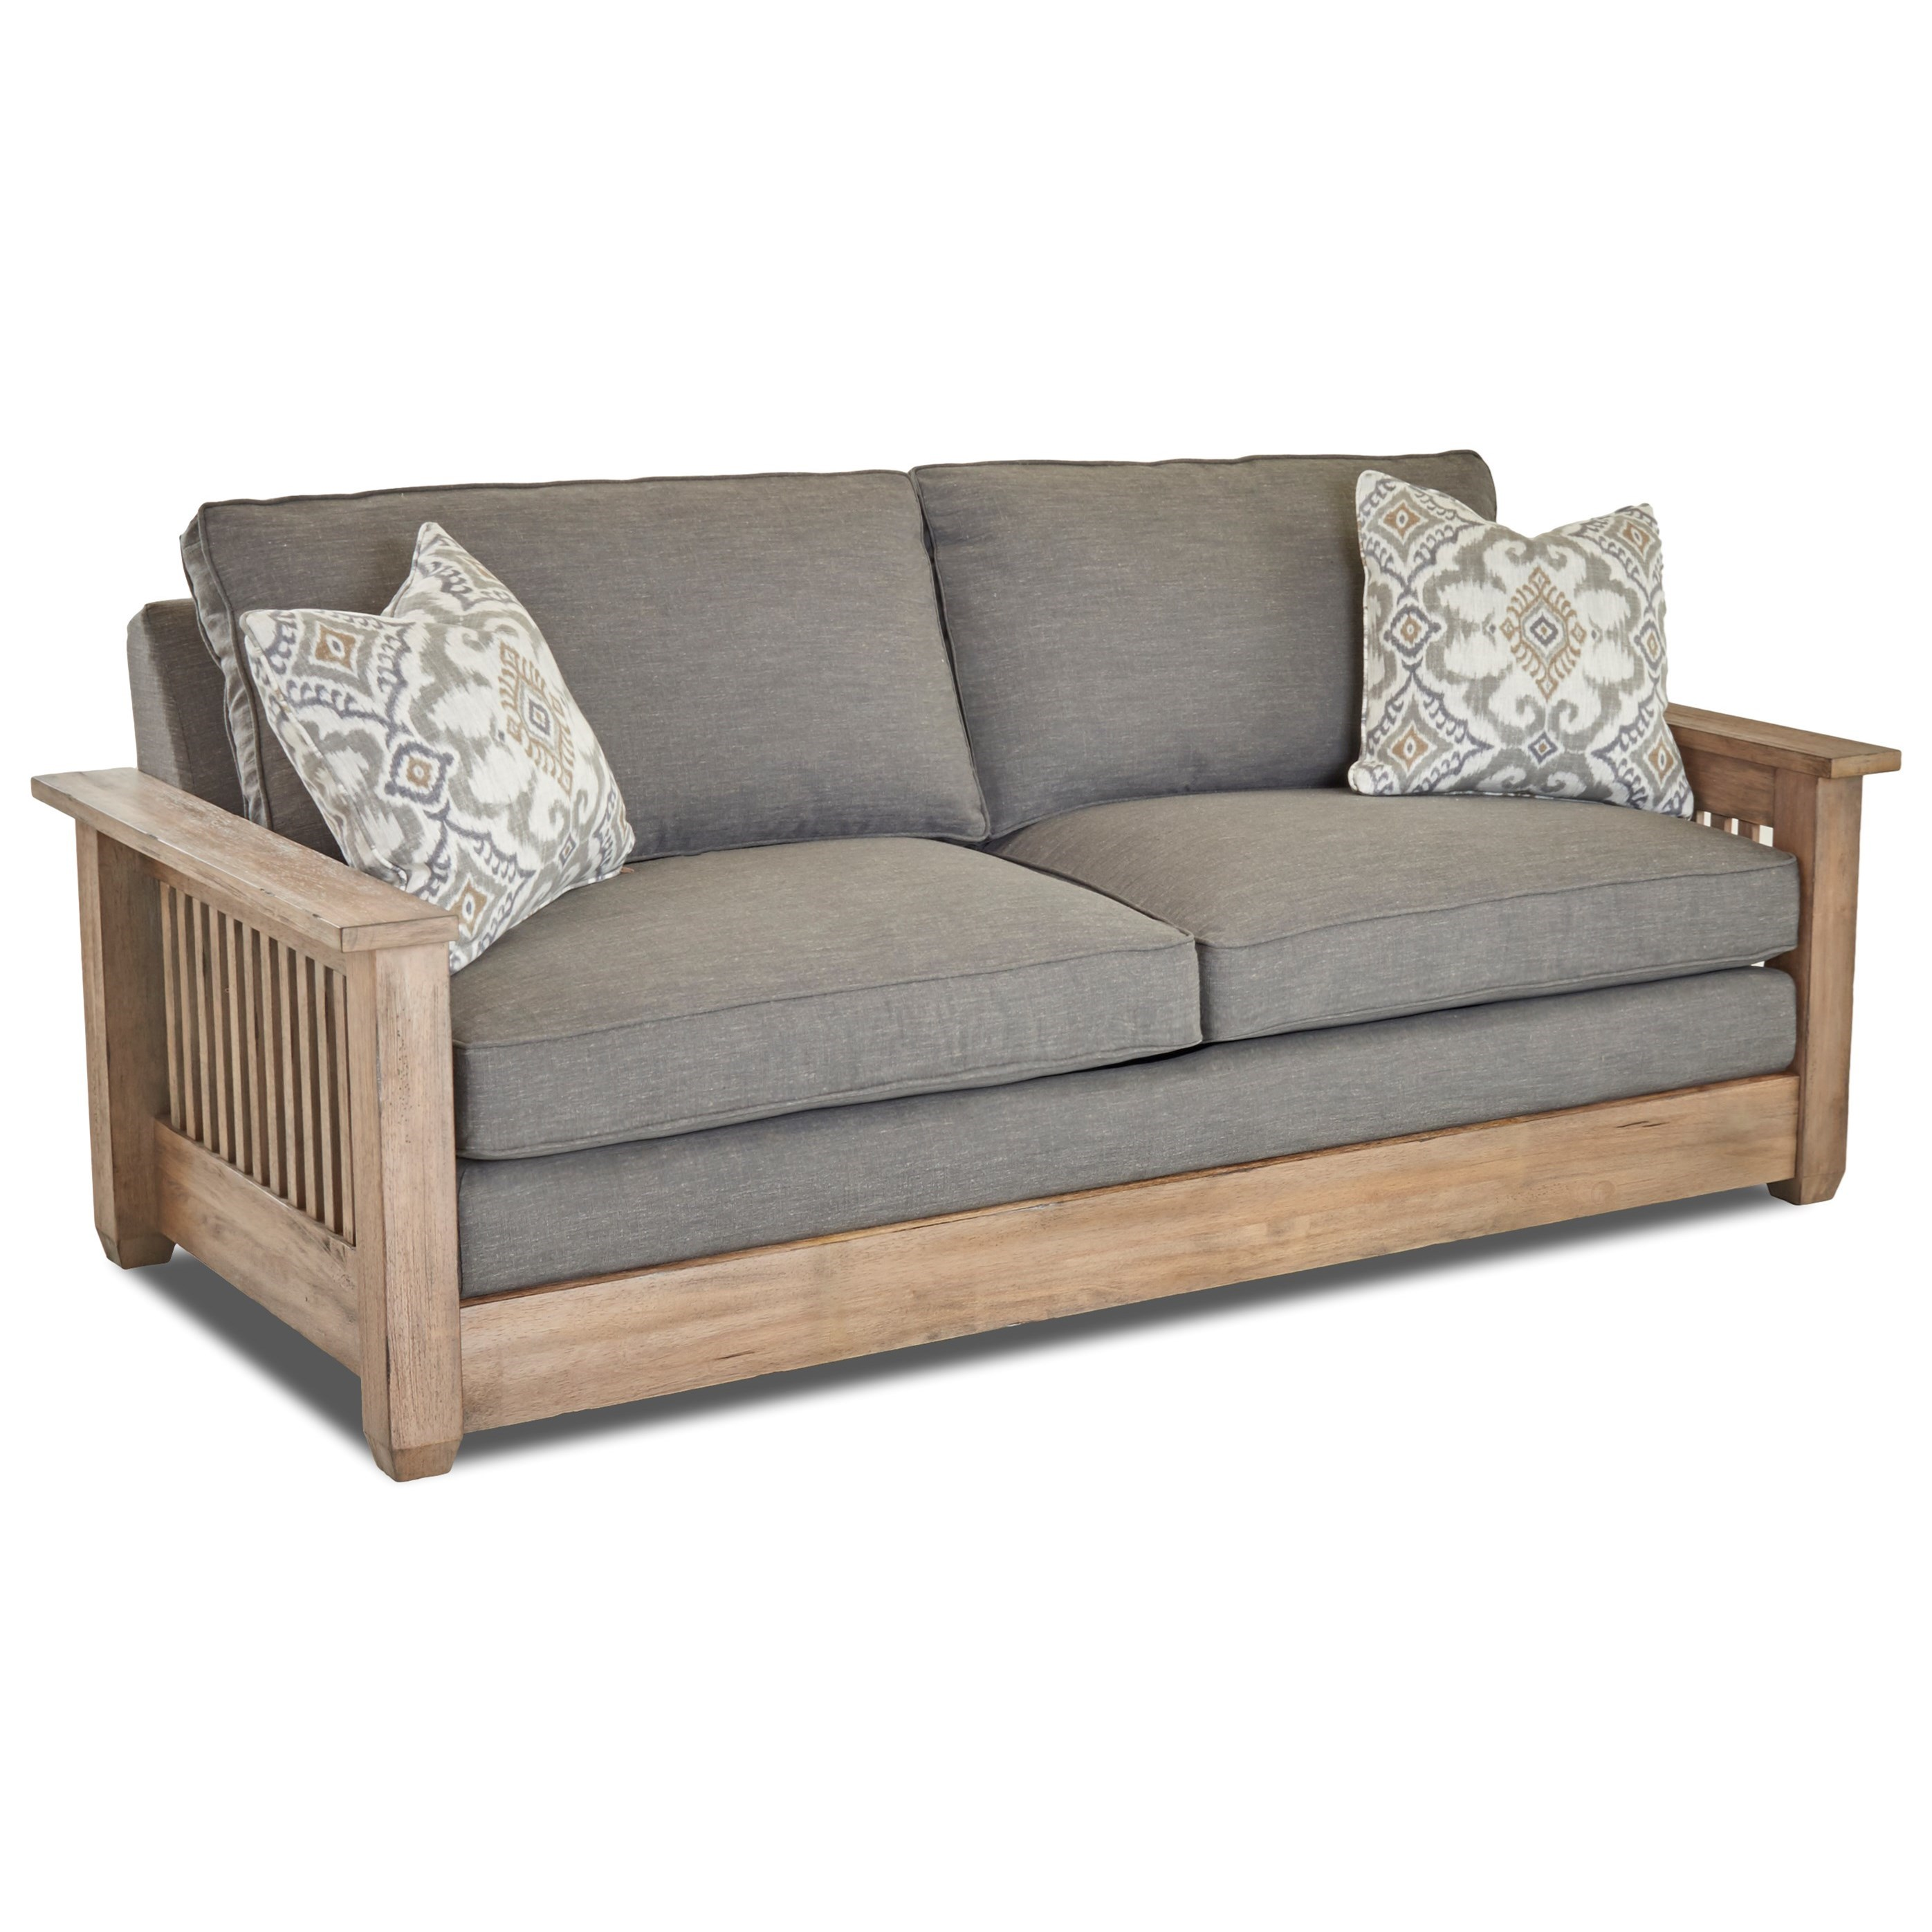 Sofa Queen Glenwood Queen Inner Spring Sleeper Sofa With Mission Style Arms By Klaussner At Suburban Furniture